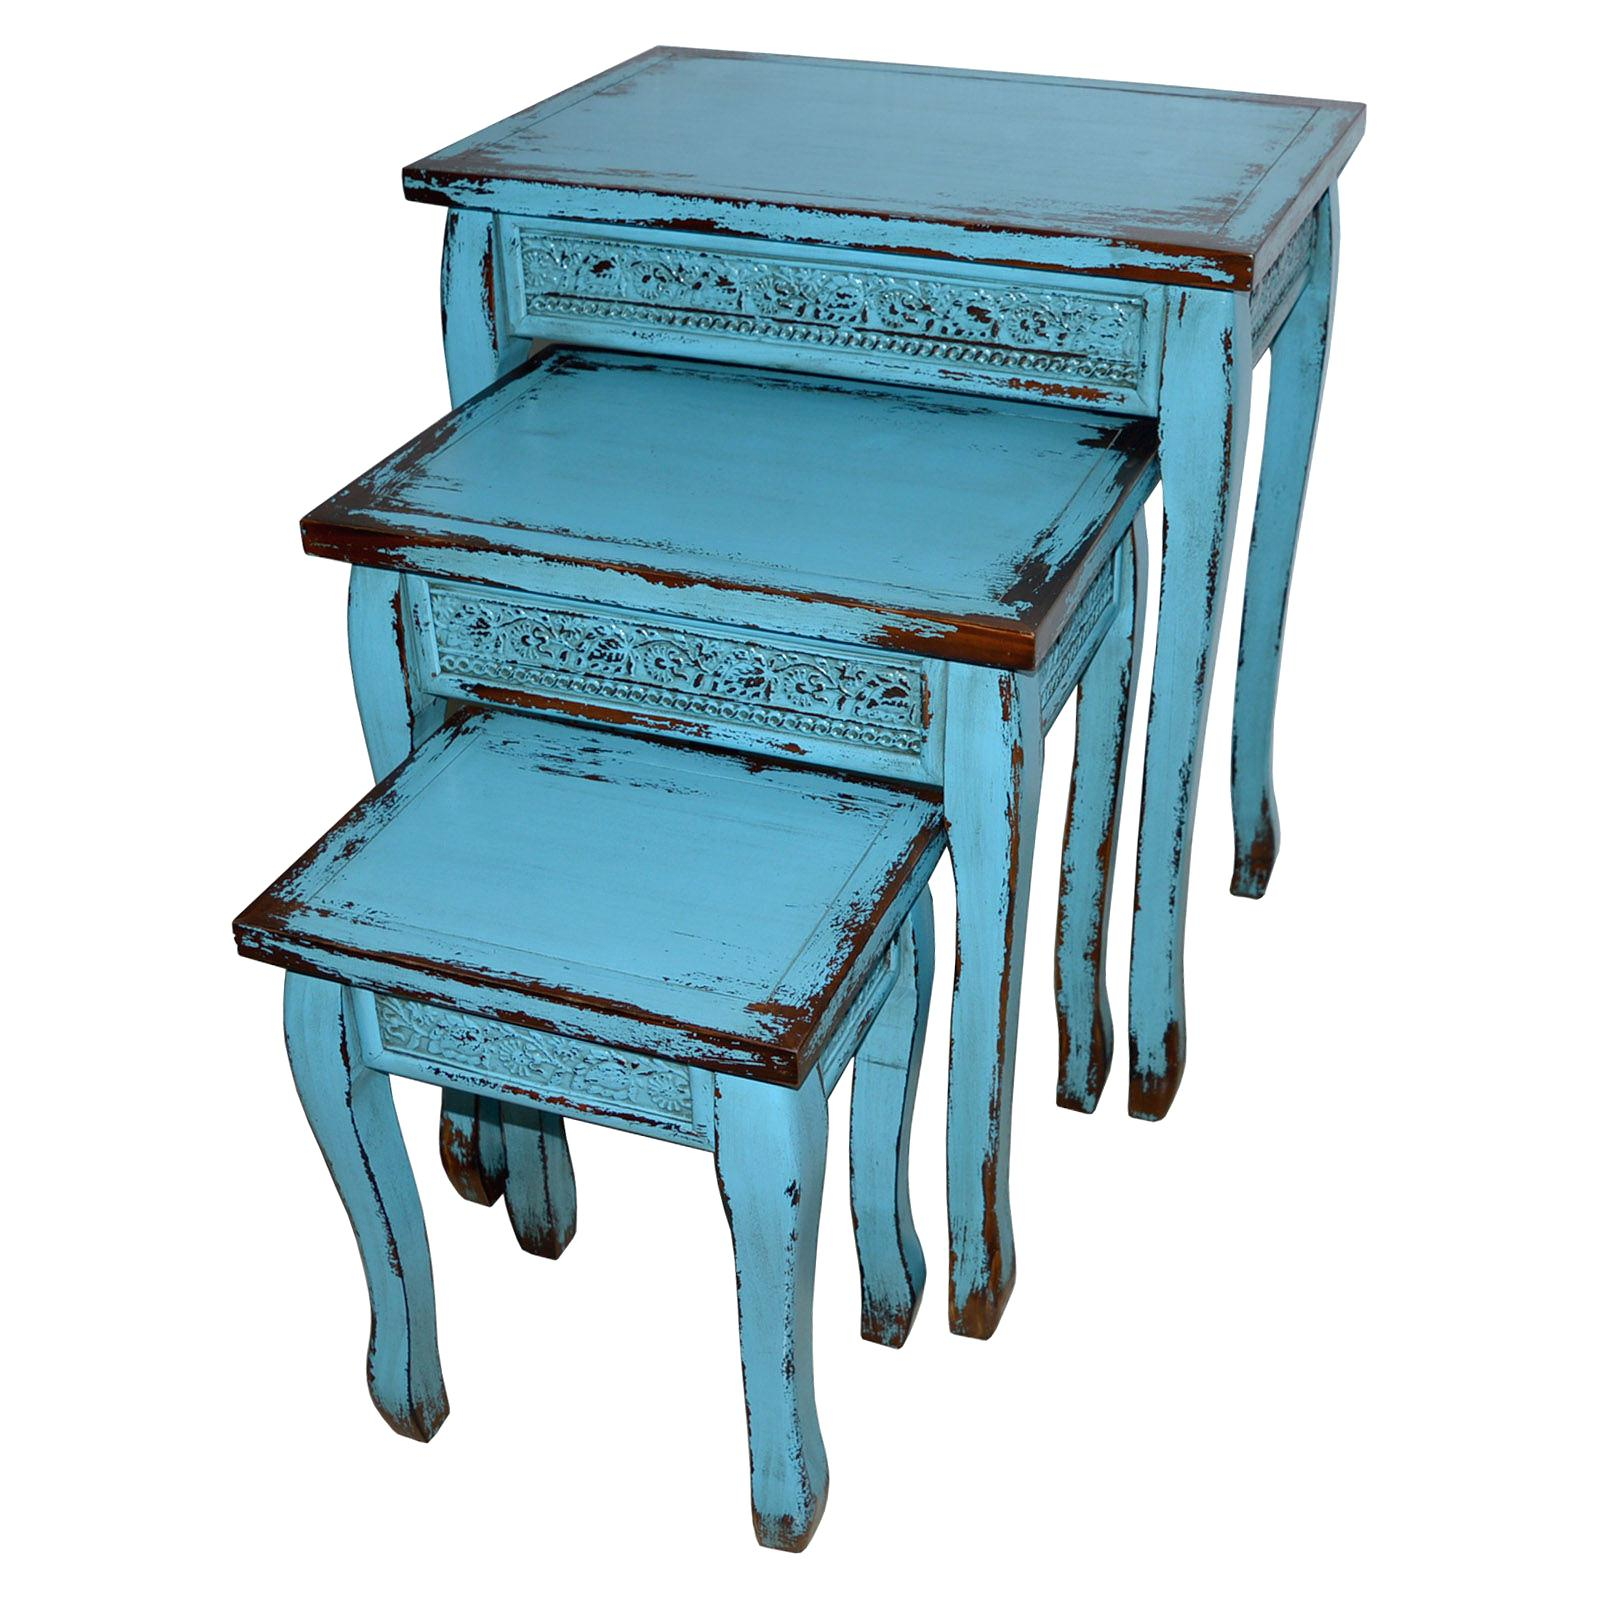 turquoise accent table lovable teal blue wooden distressed side large target fretwork dresser diy chest coffee oriental style lamps grey geometric rug tile patio outdoor furniture